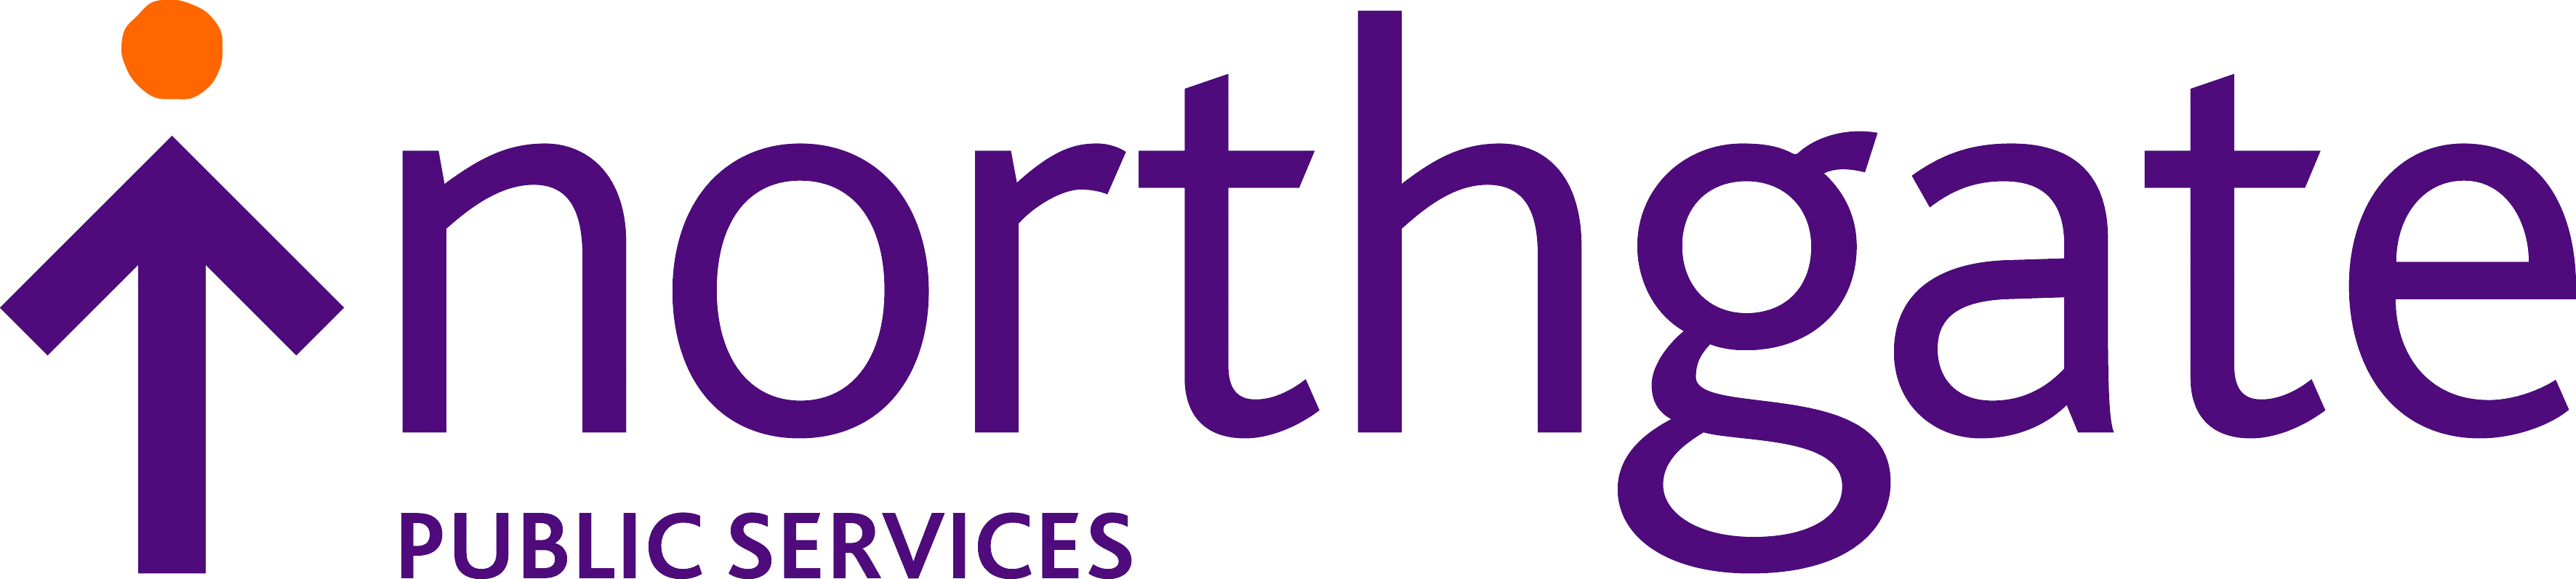 Northgate Logo_2015 07 30